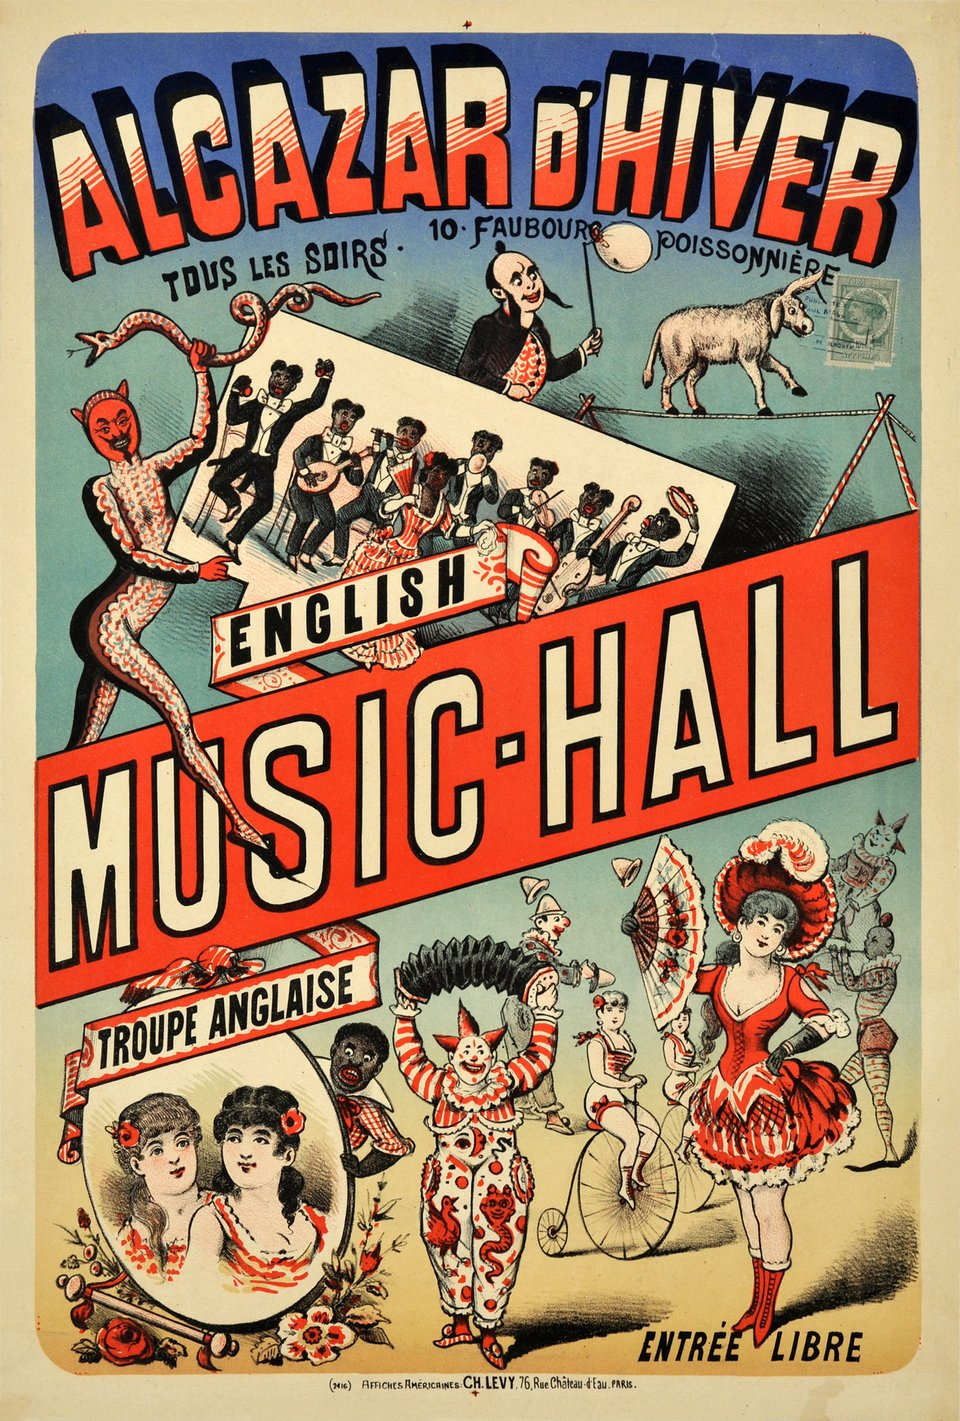 Alcazar d'Hiver, English Music - Hall – Affiche ancienne – Ch LEVY – 1895